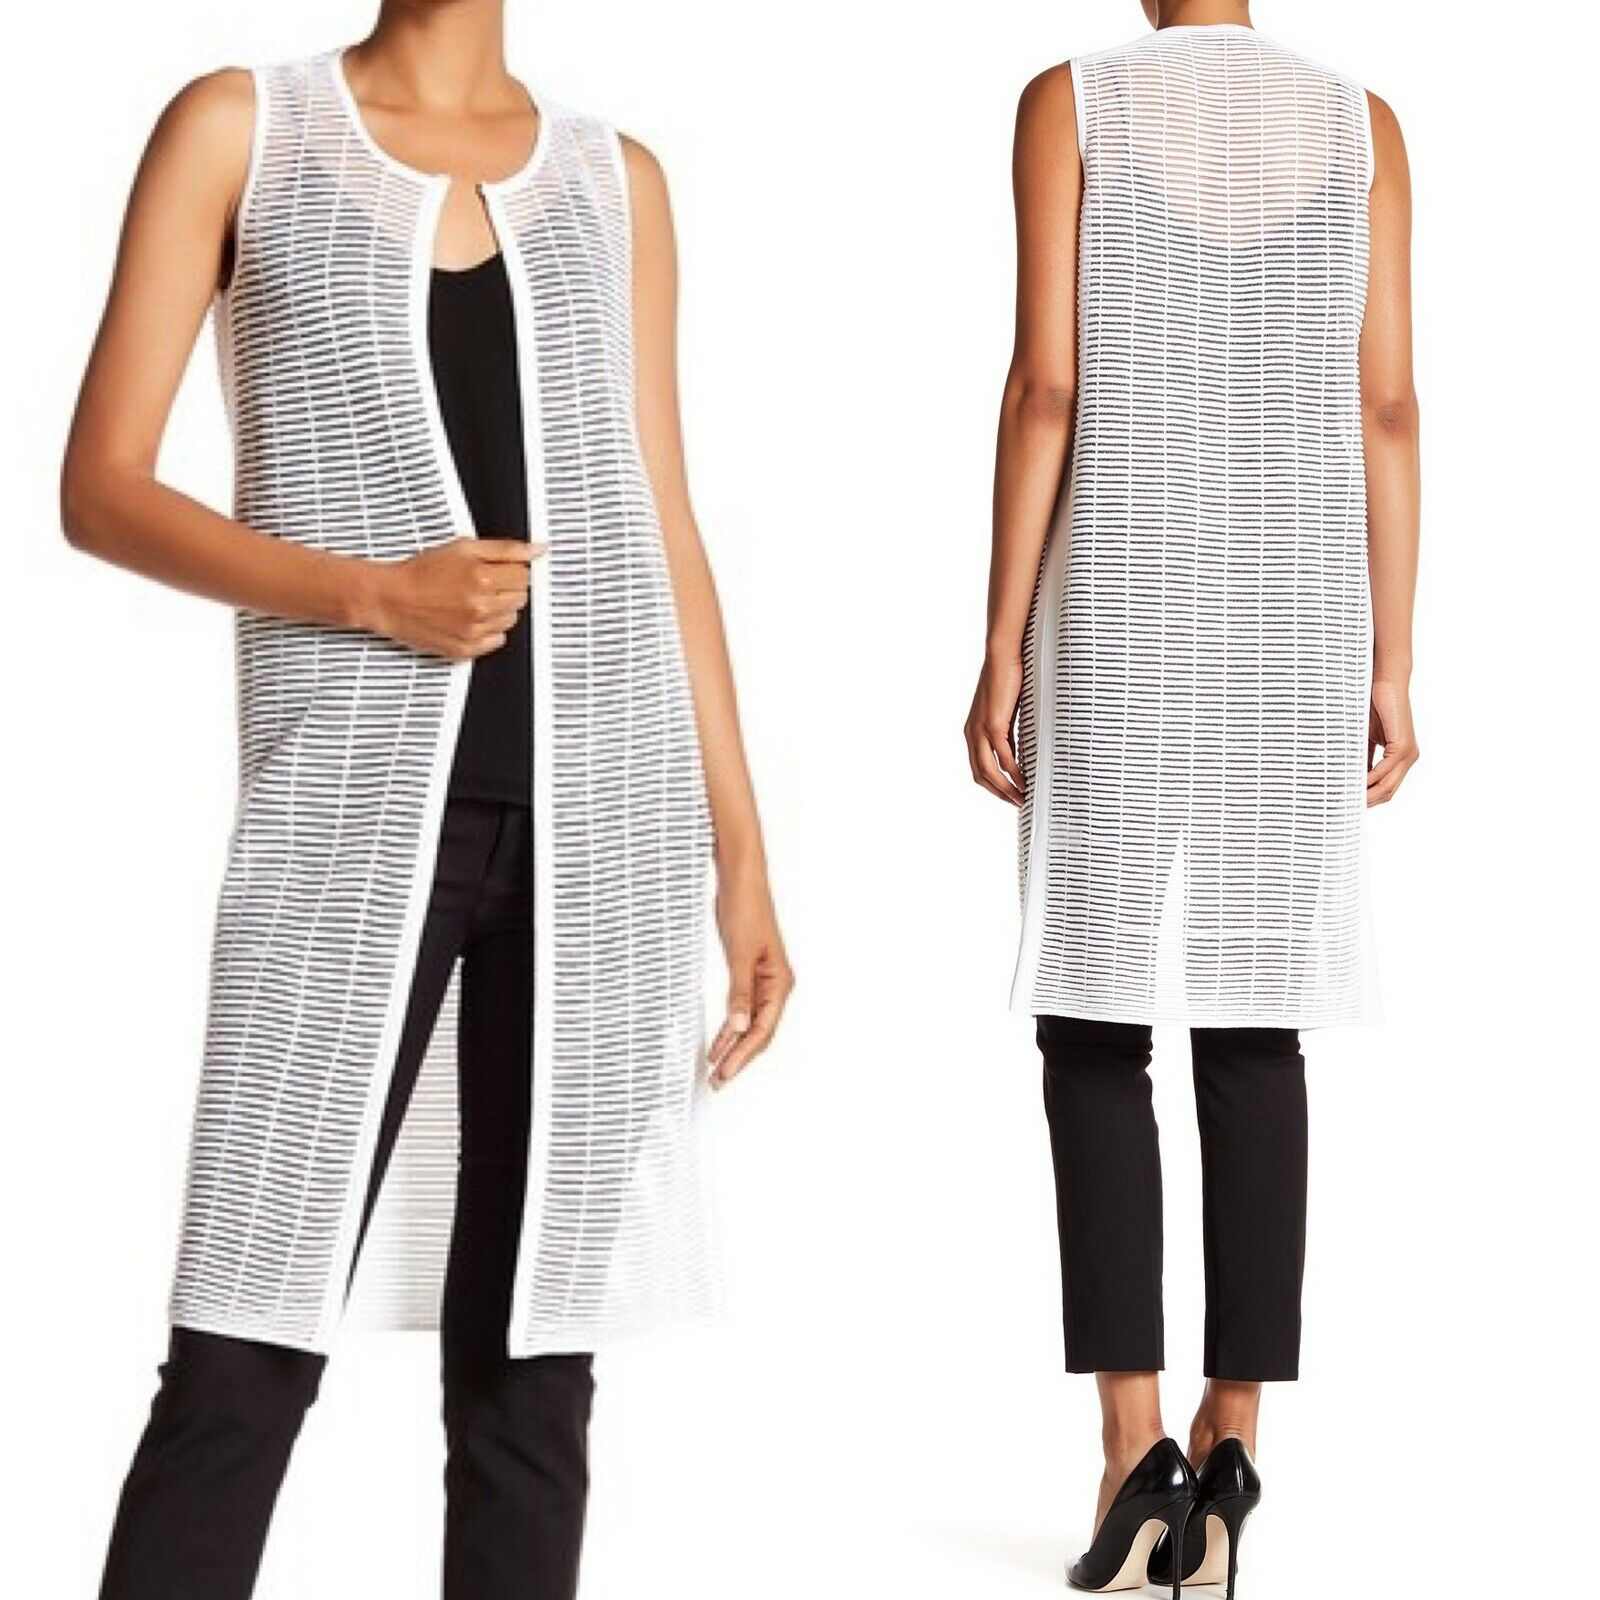 Lafayette 148 New York Women's White Long Shadow Striped Vest Size P